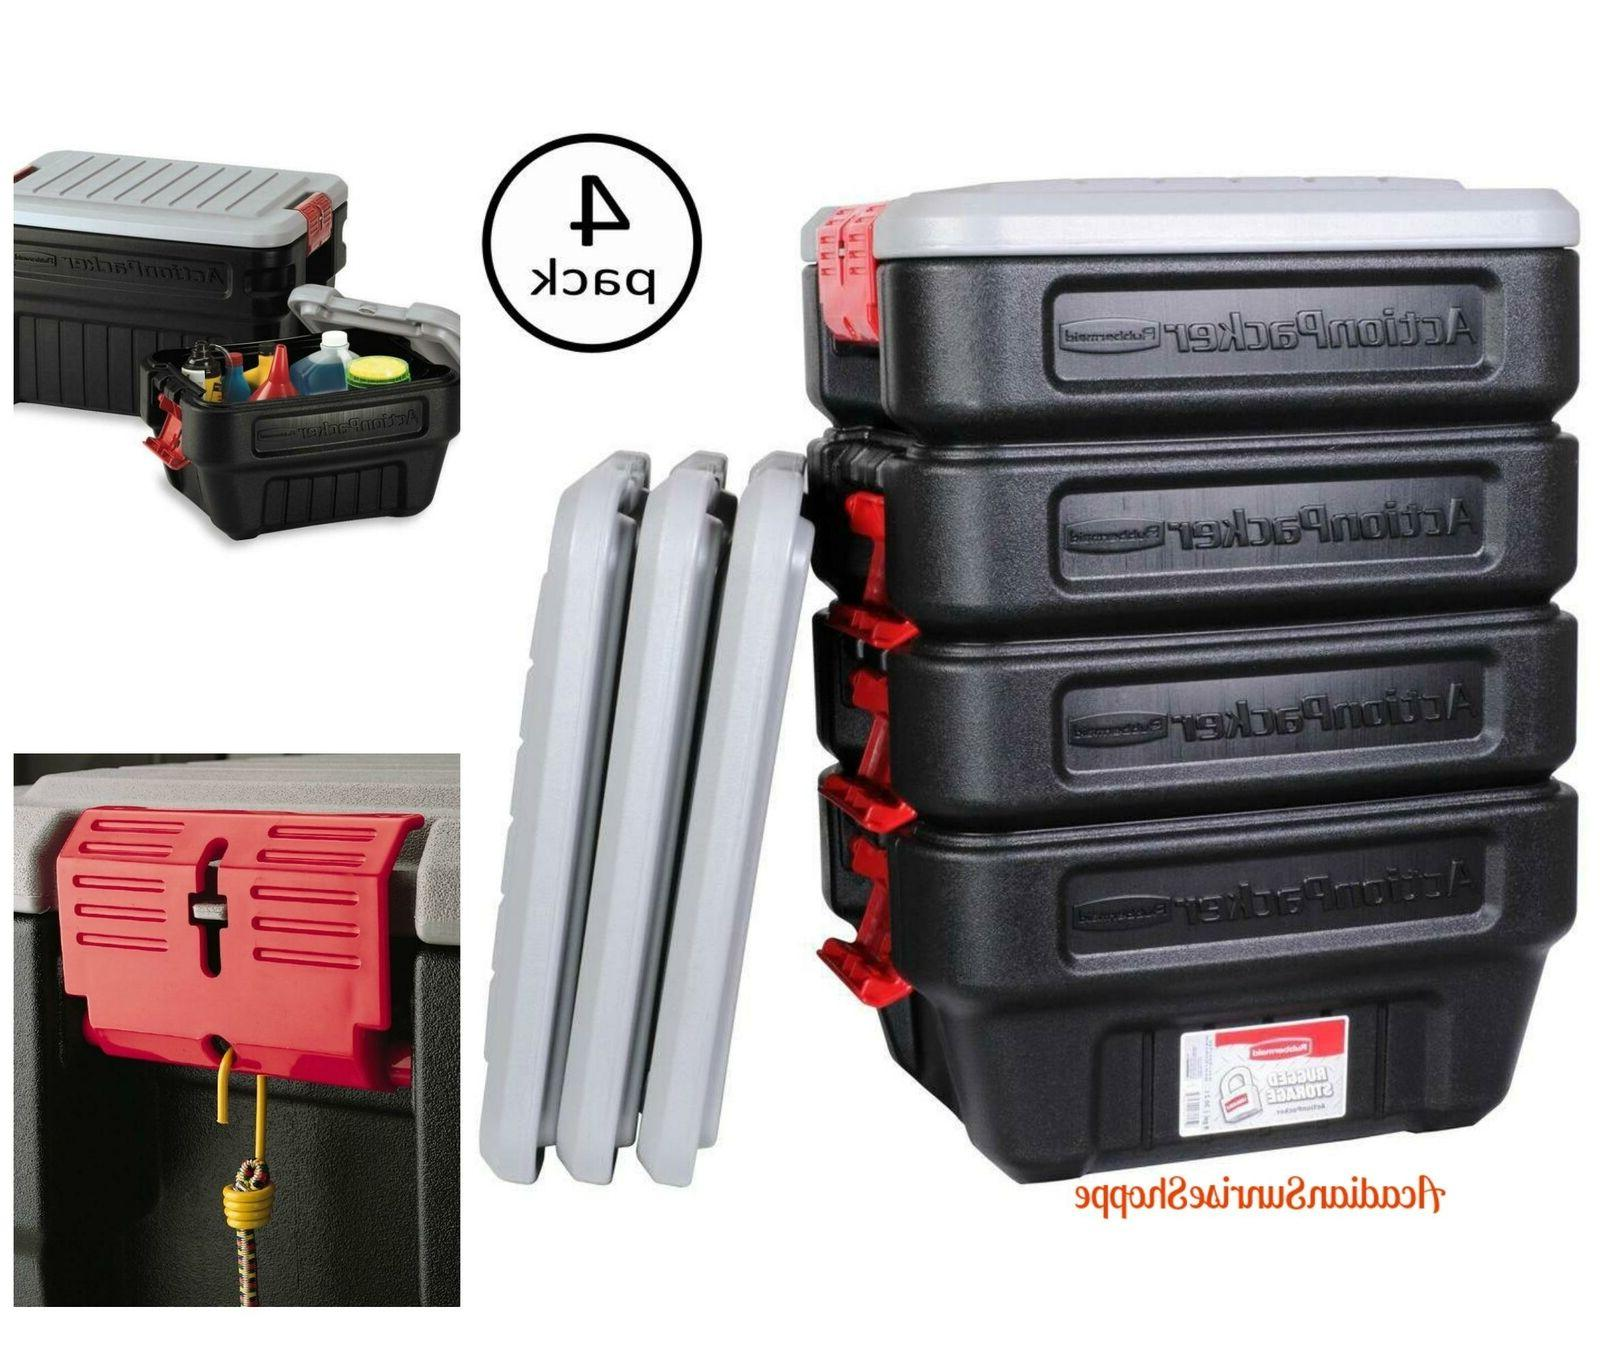 Rubbermaid 8-Gal Action Storage Stackable